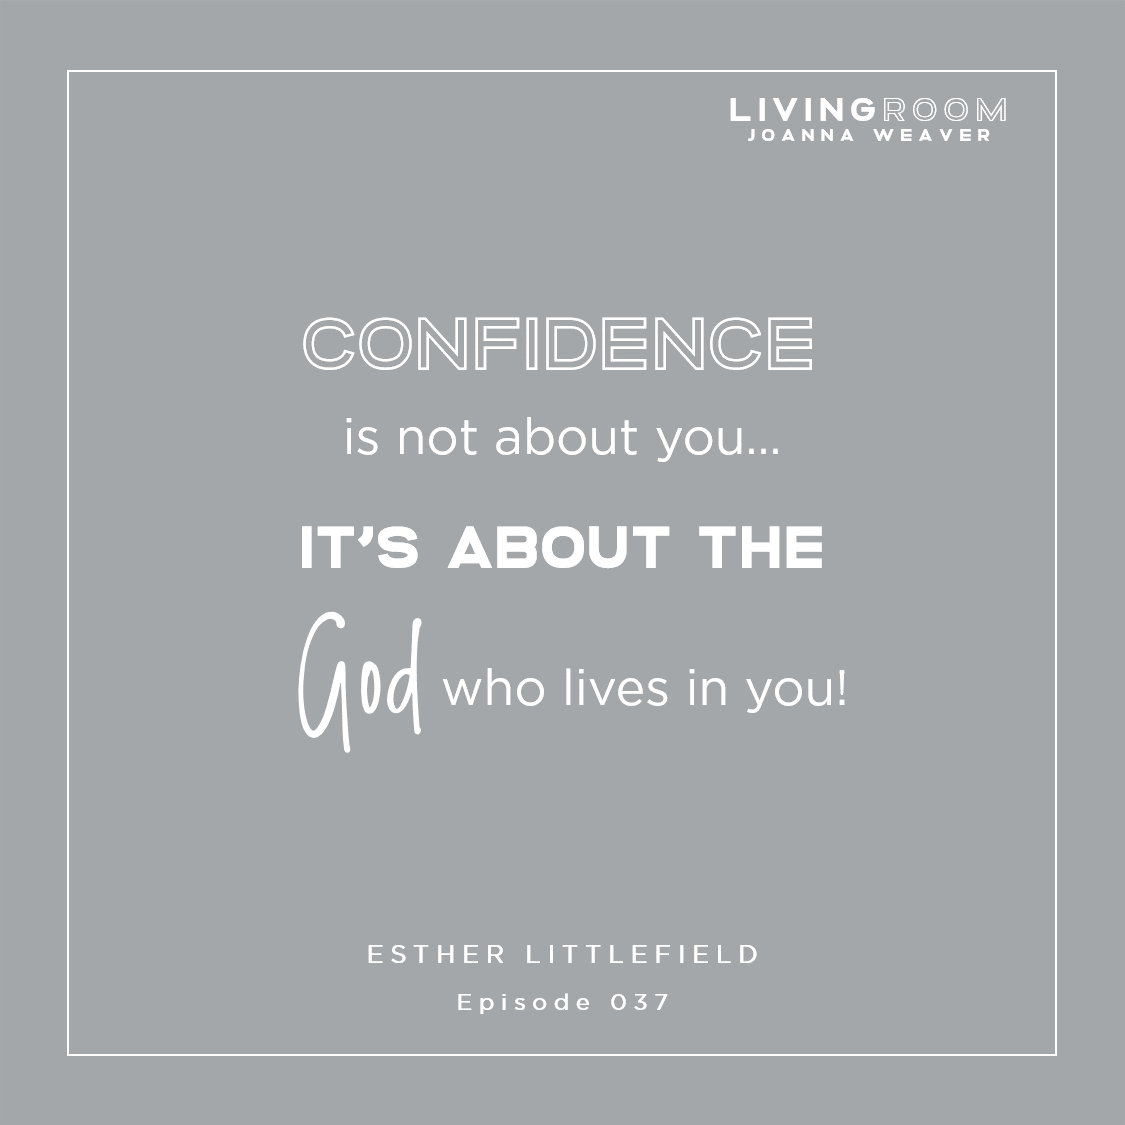 """Confidence is not about you...it's about the God who lives in you!"" - Esther Littlefield - TLR 037"